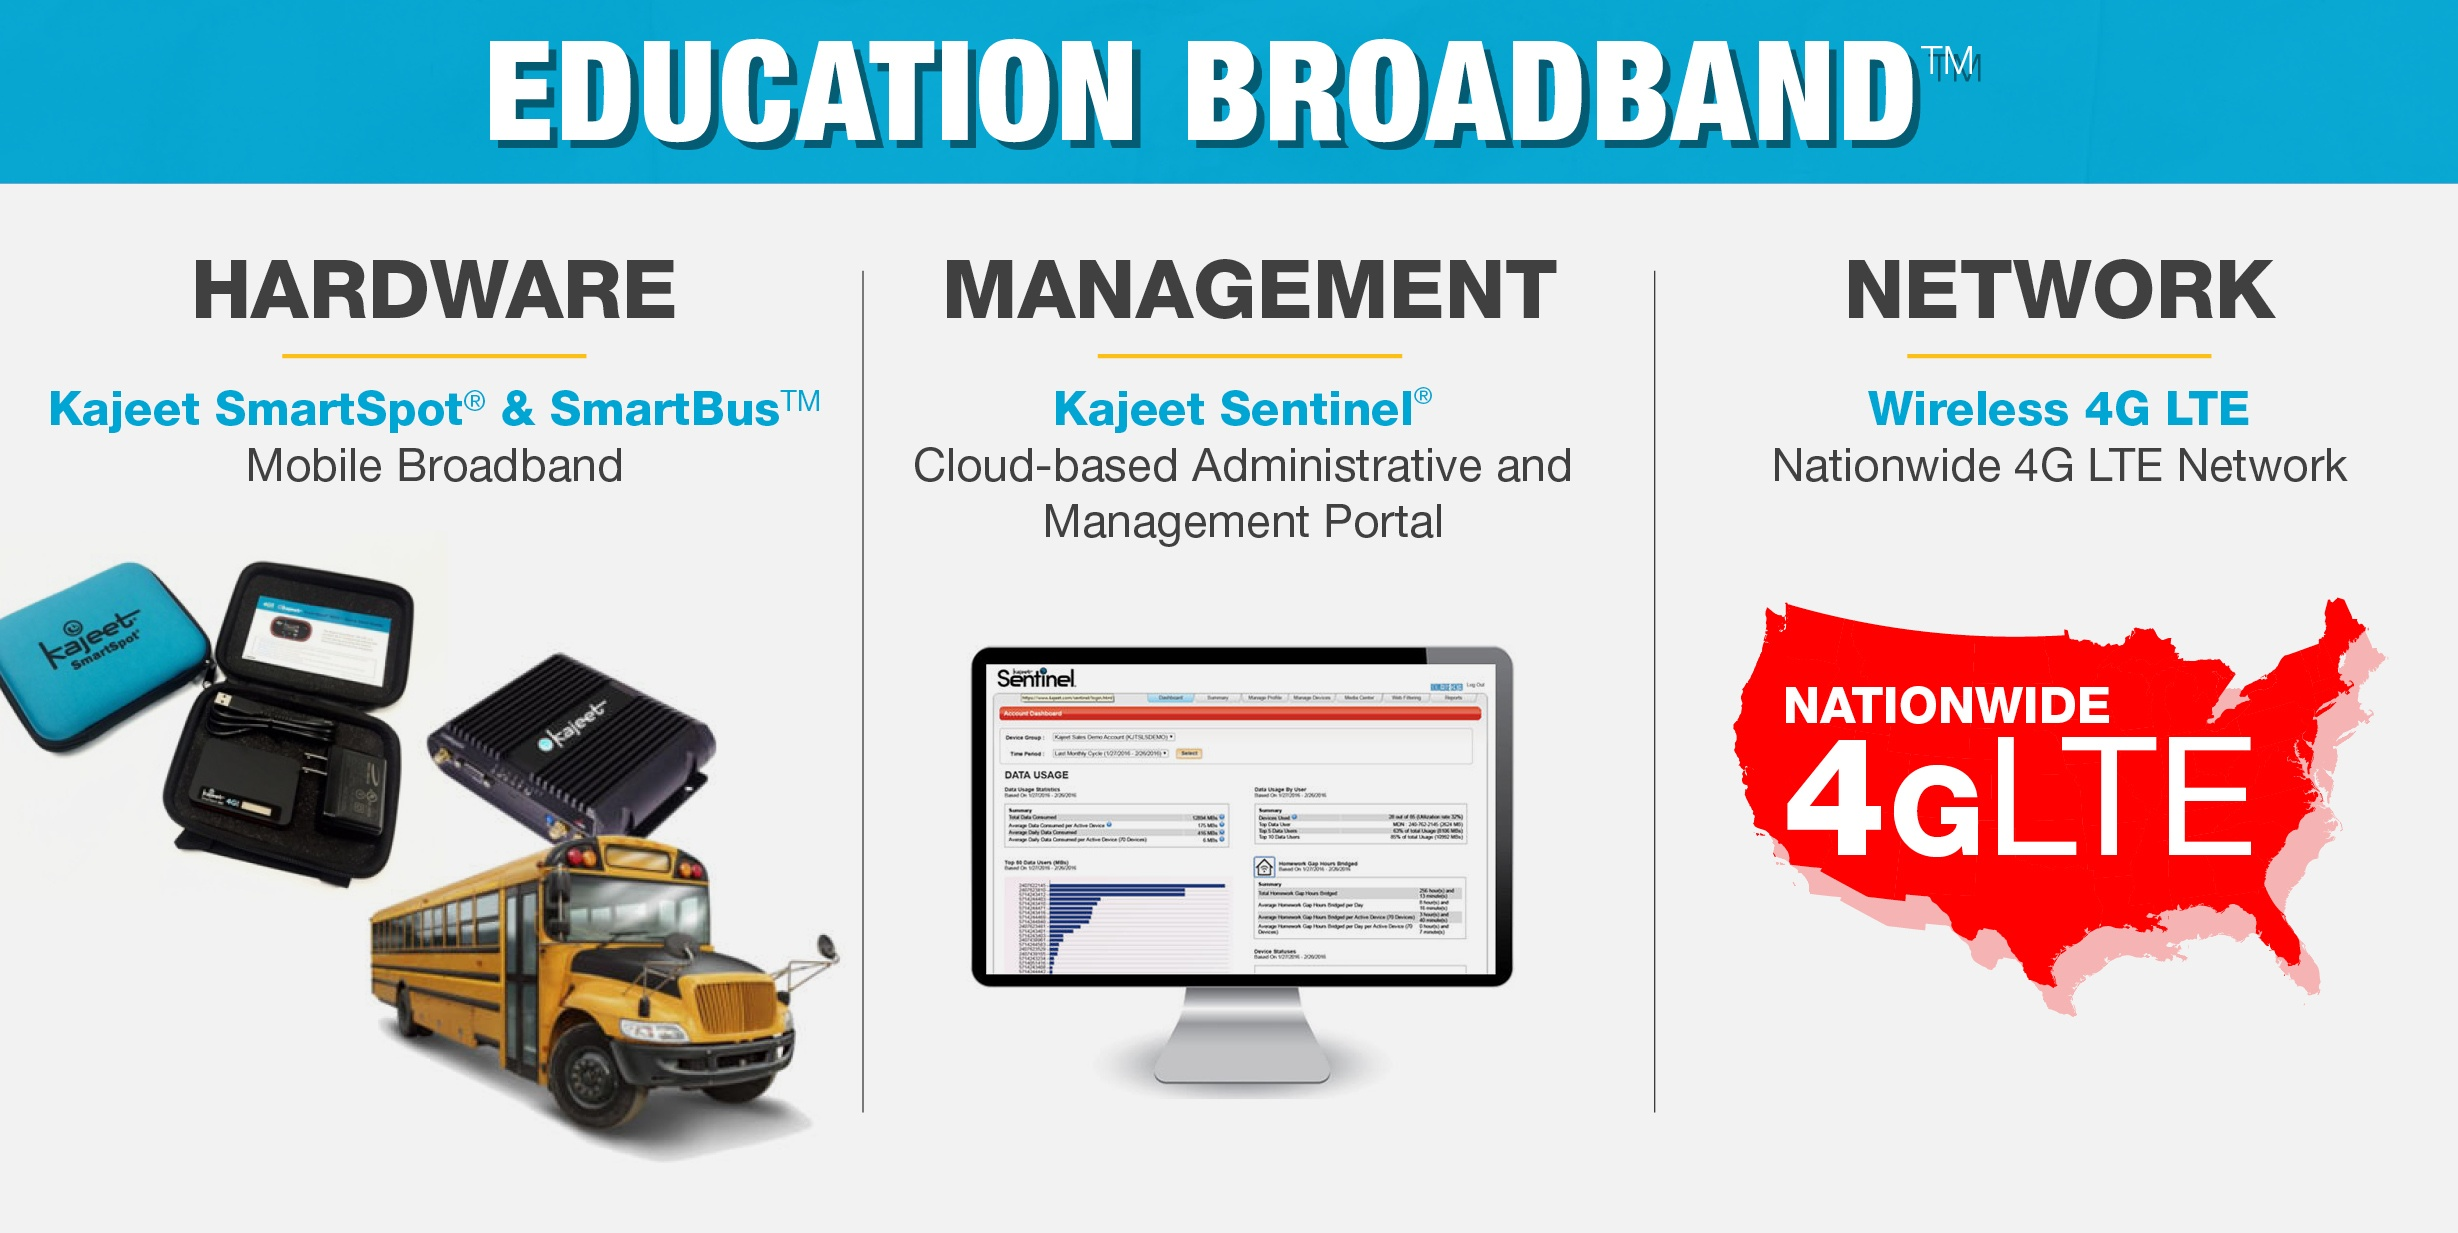 EducationBroadband.jpg